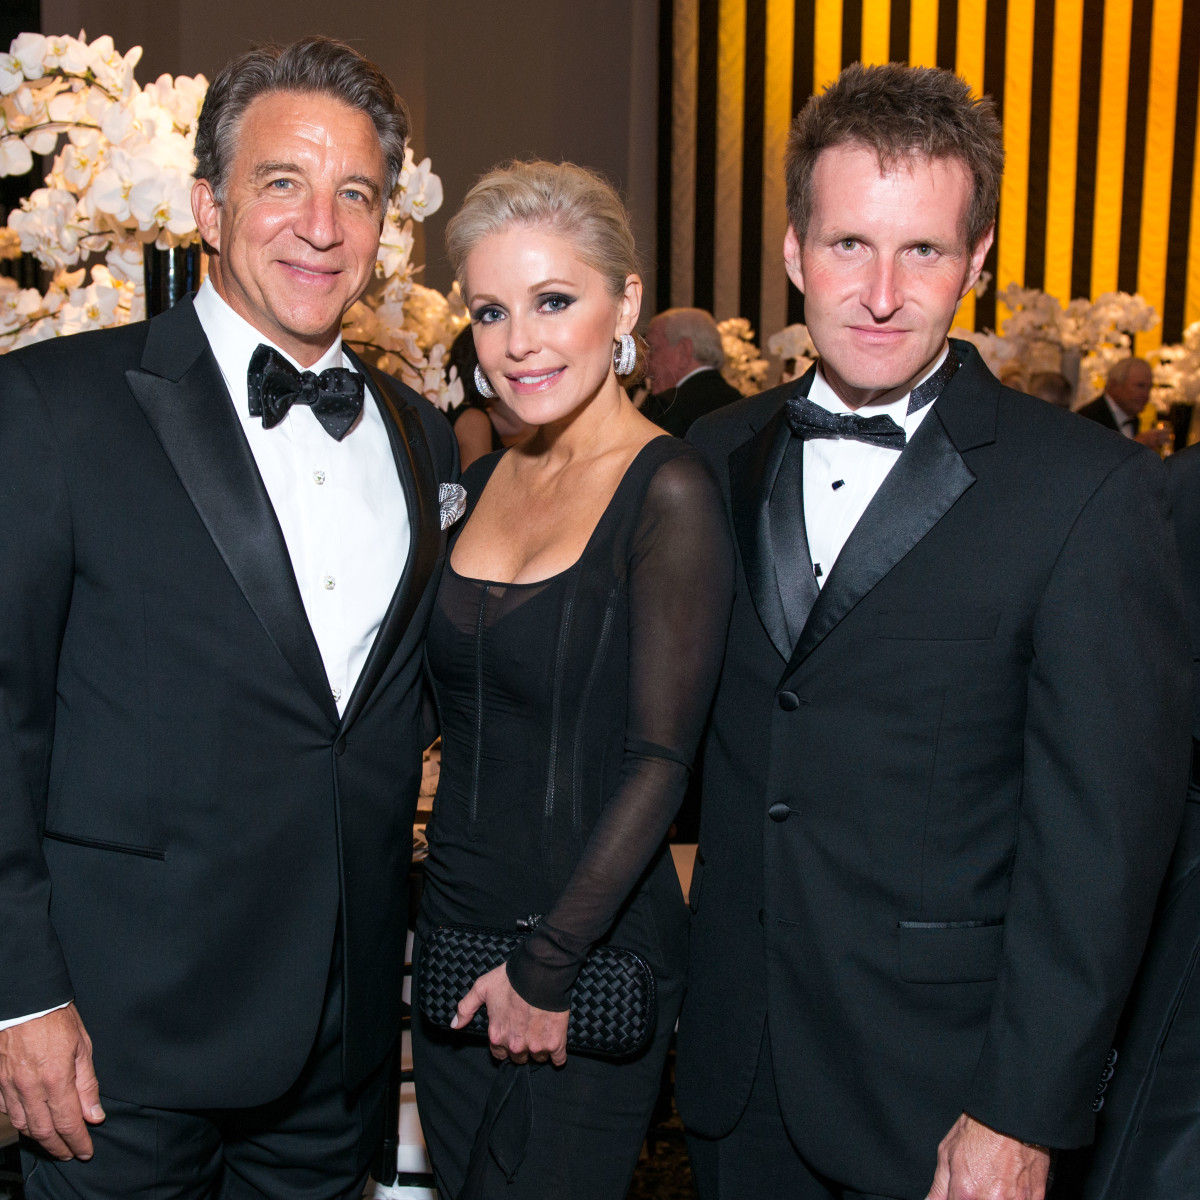 News, Shelby, Museum of Fine Arts gala, Oct. 2015, Steve Wyatt, Joyce Echols, Brad Wyatt